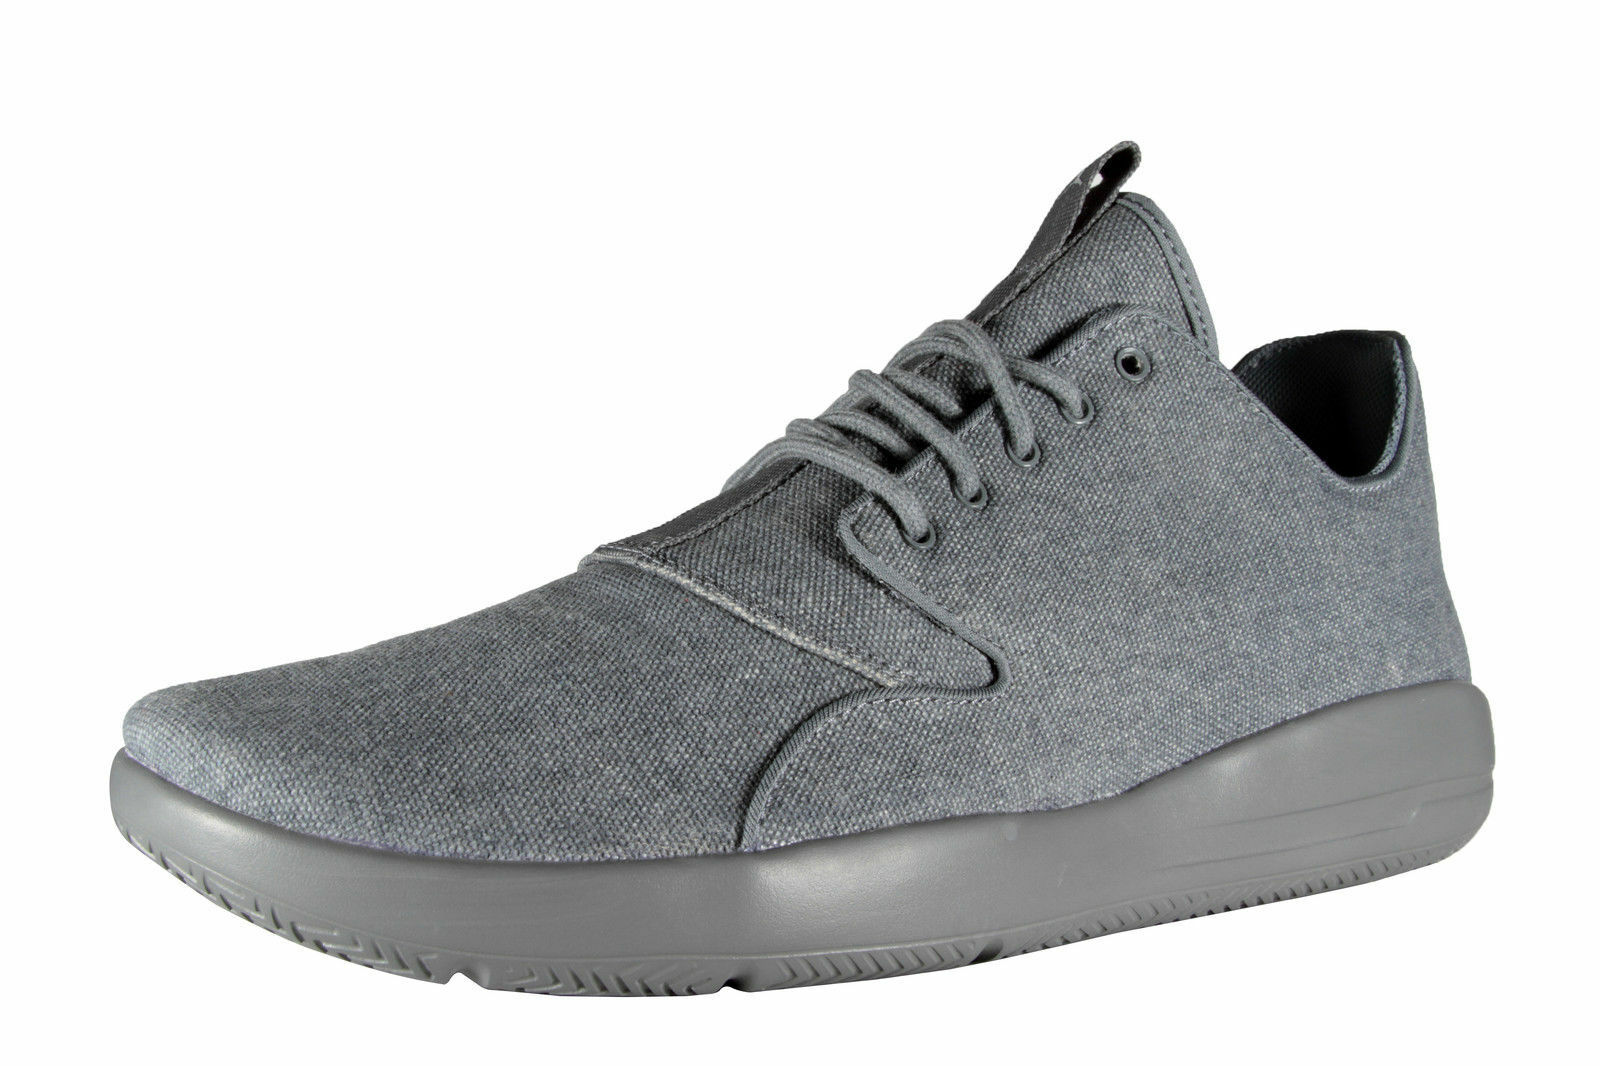 Nike Air Jordan Eclipse Price reduction Wild casual shoes